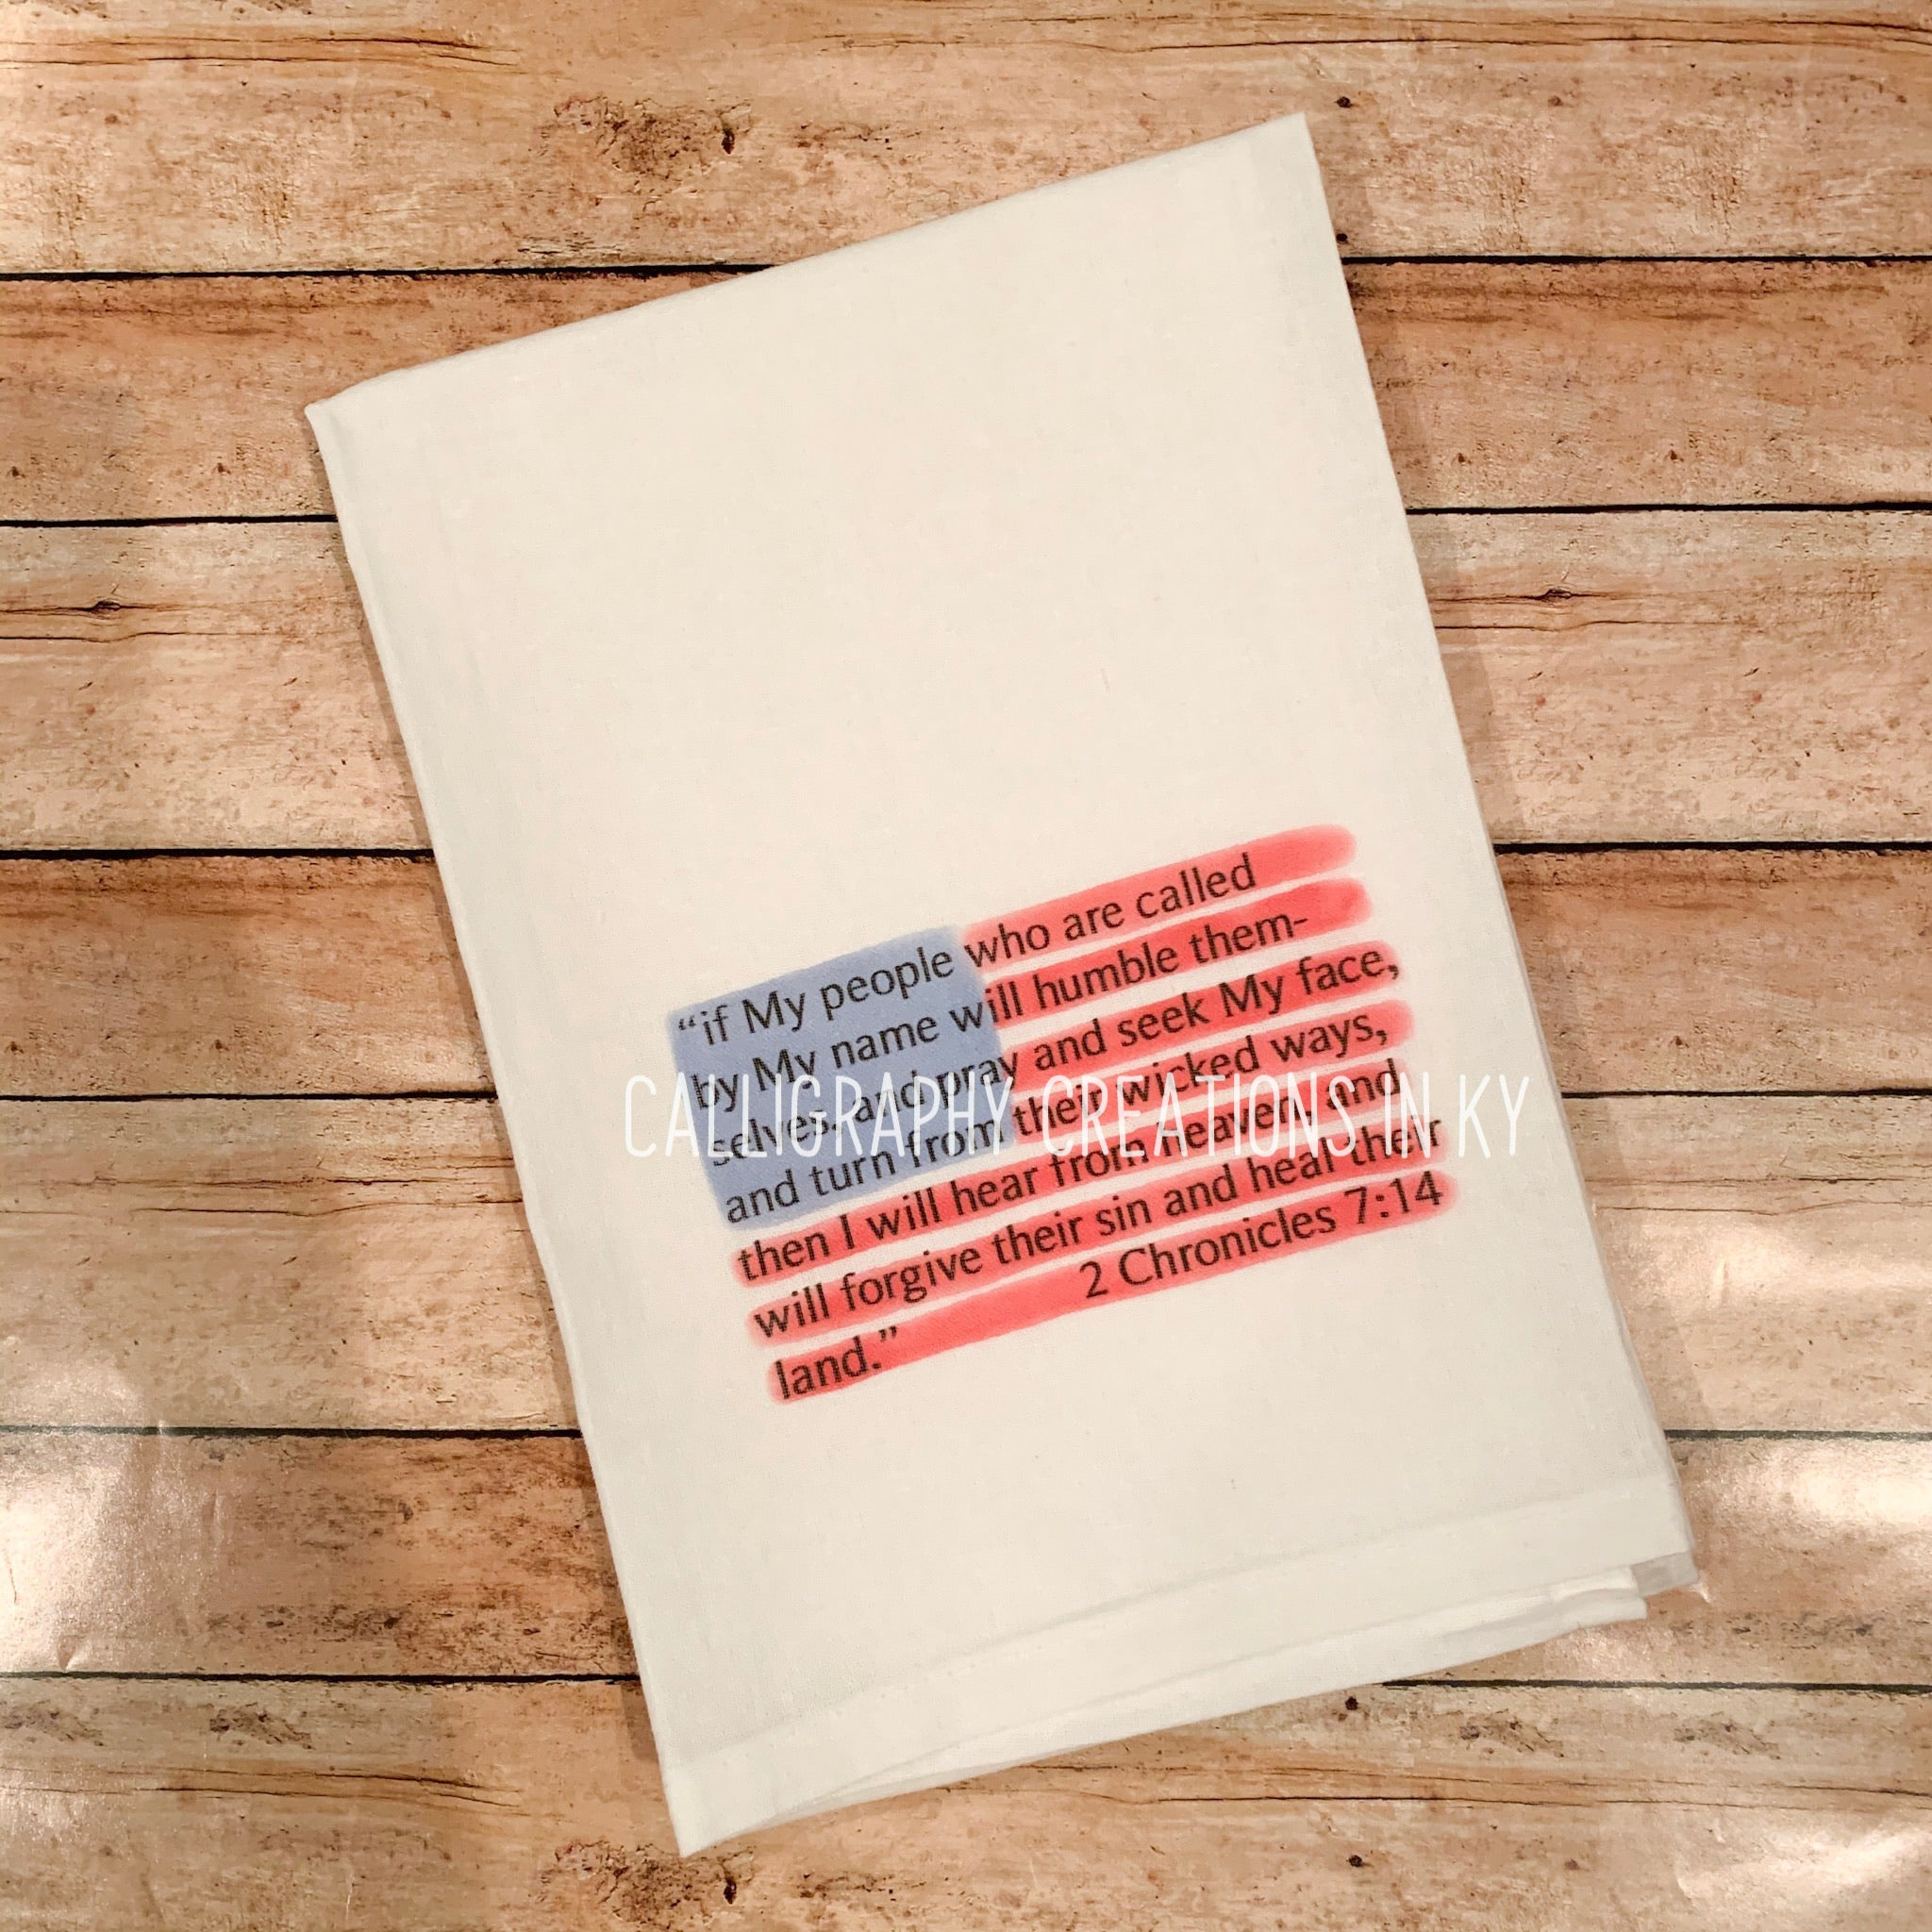 2 Chronicles 7:14 Flag Tea Towel